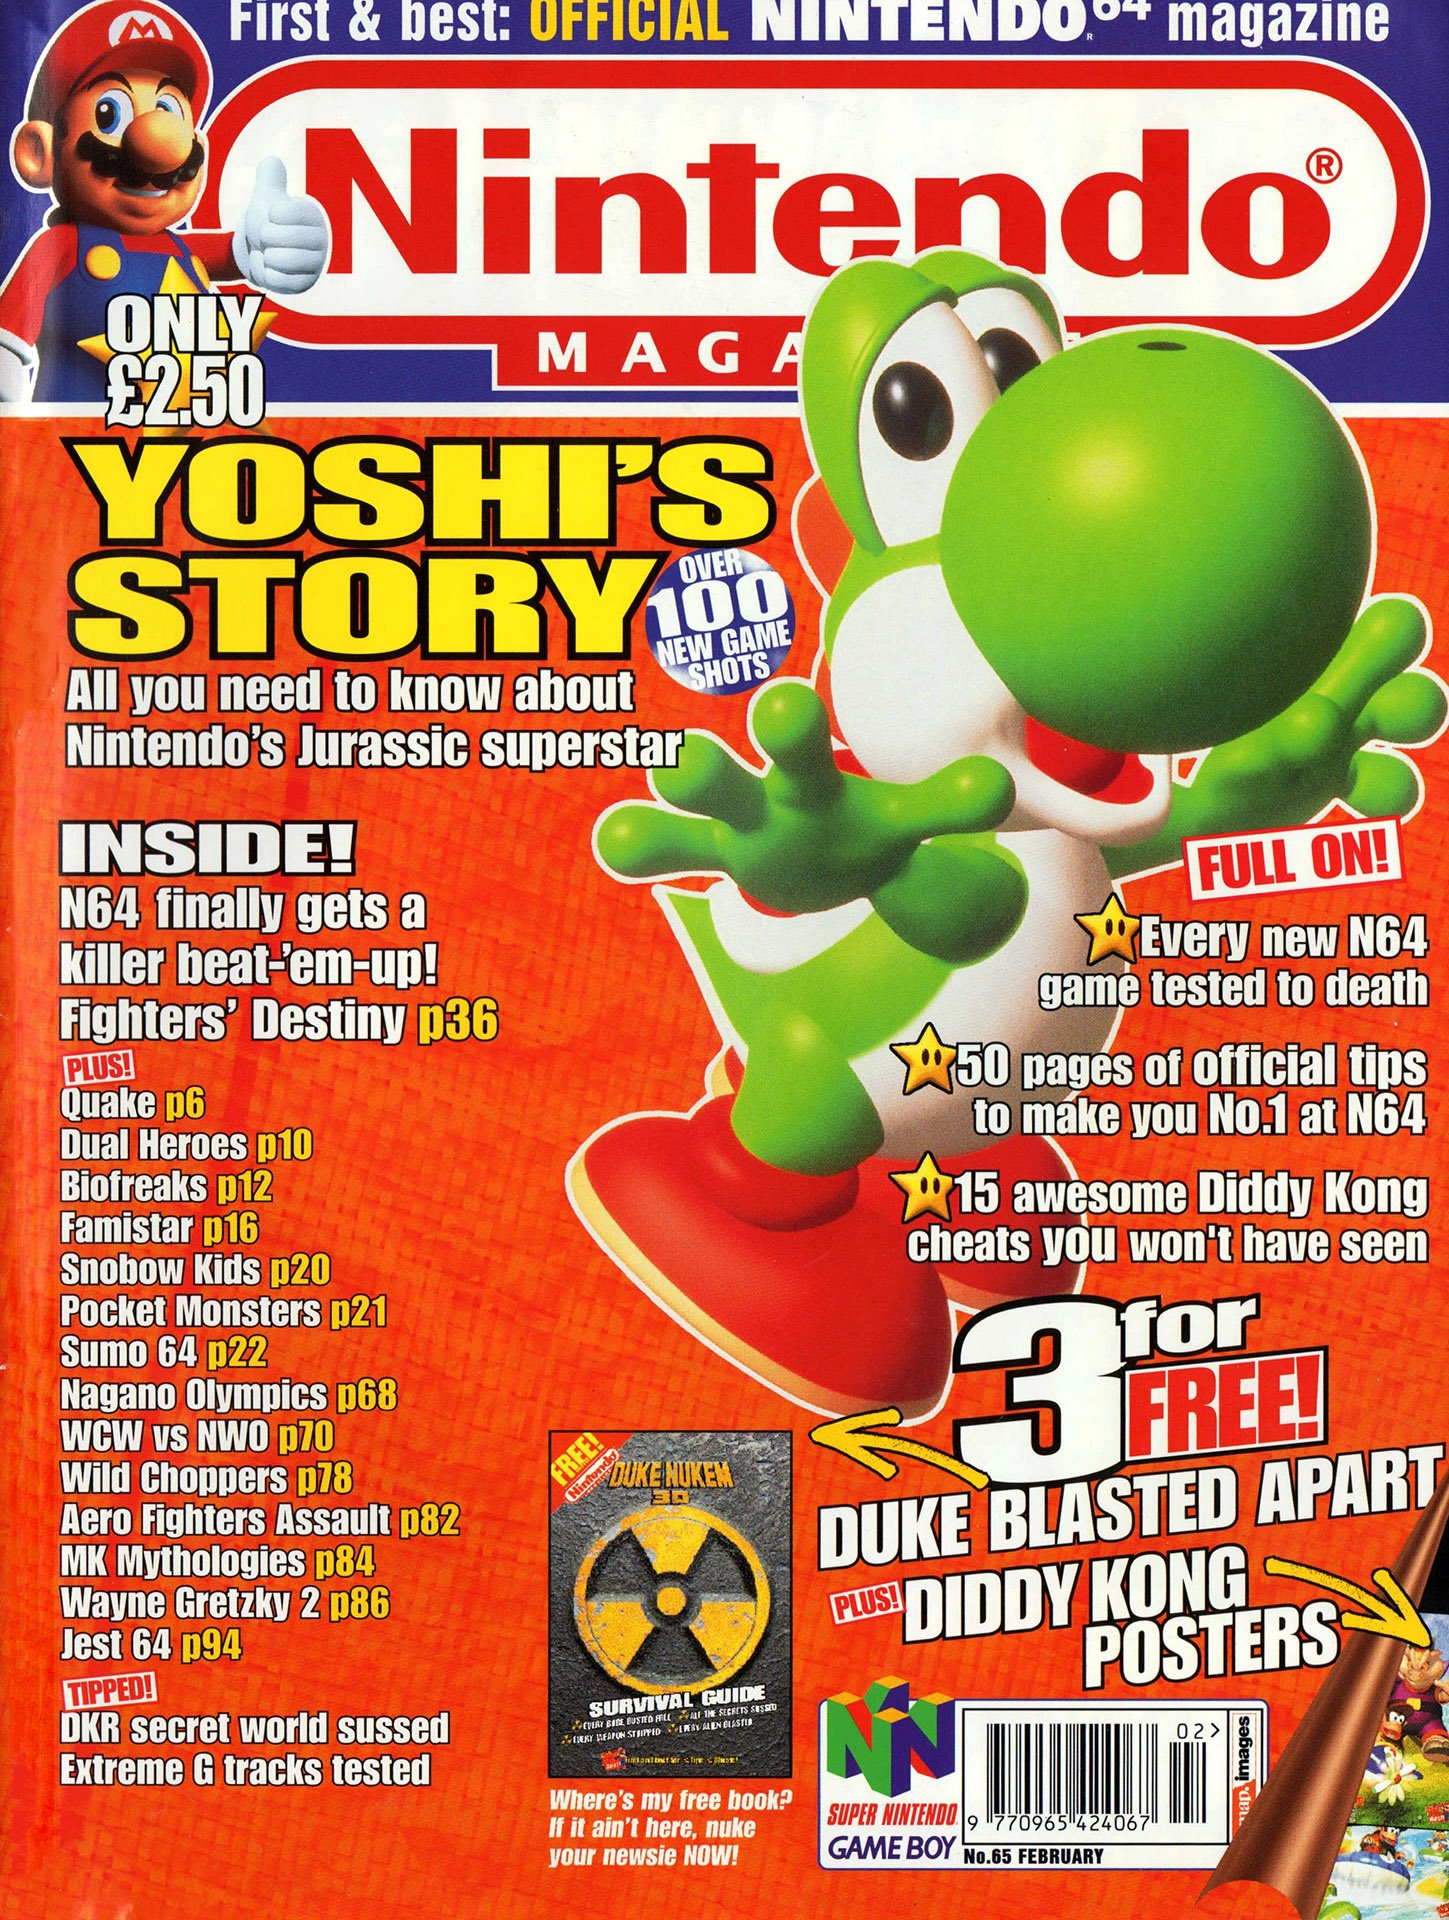 Nintendo Official Magazine 065 (February 1998)